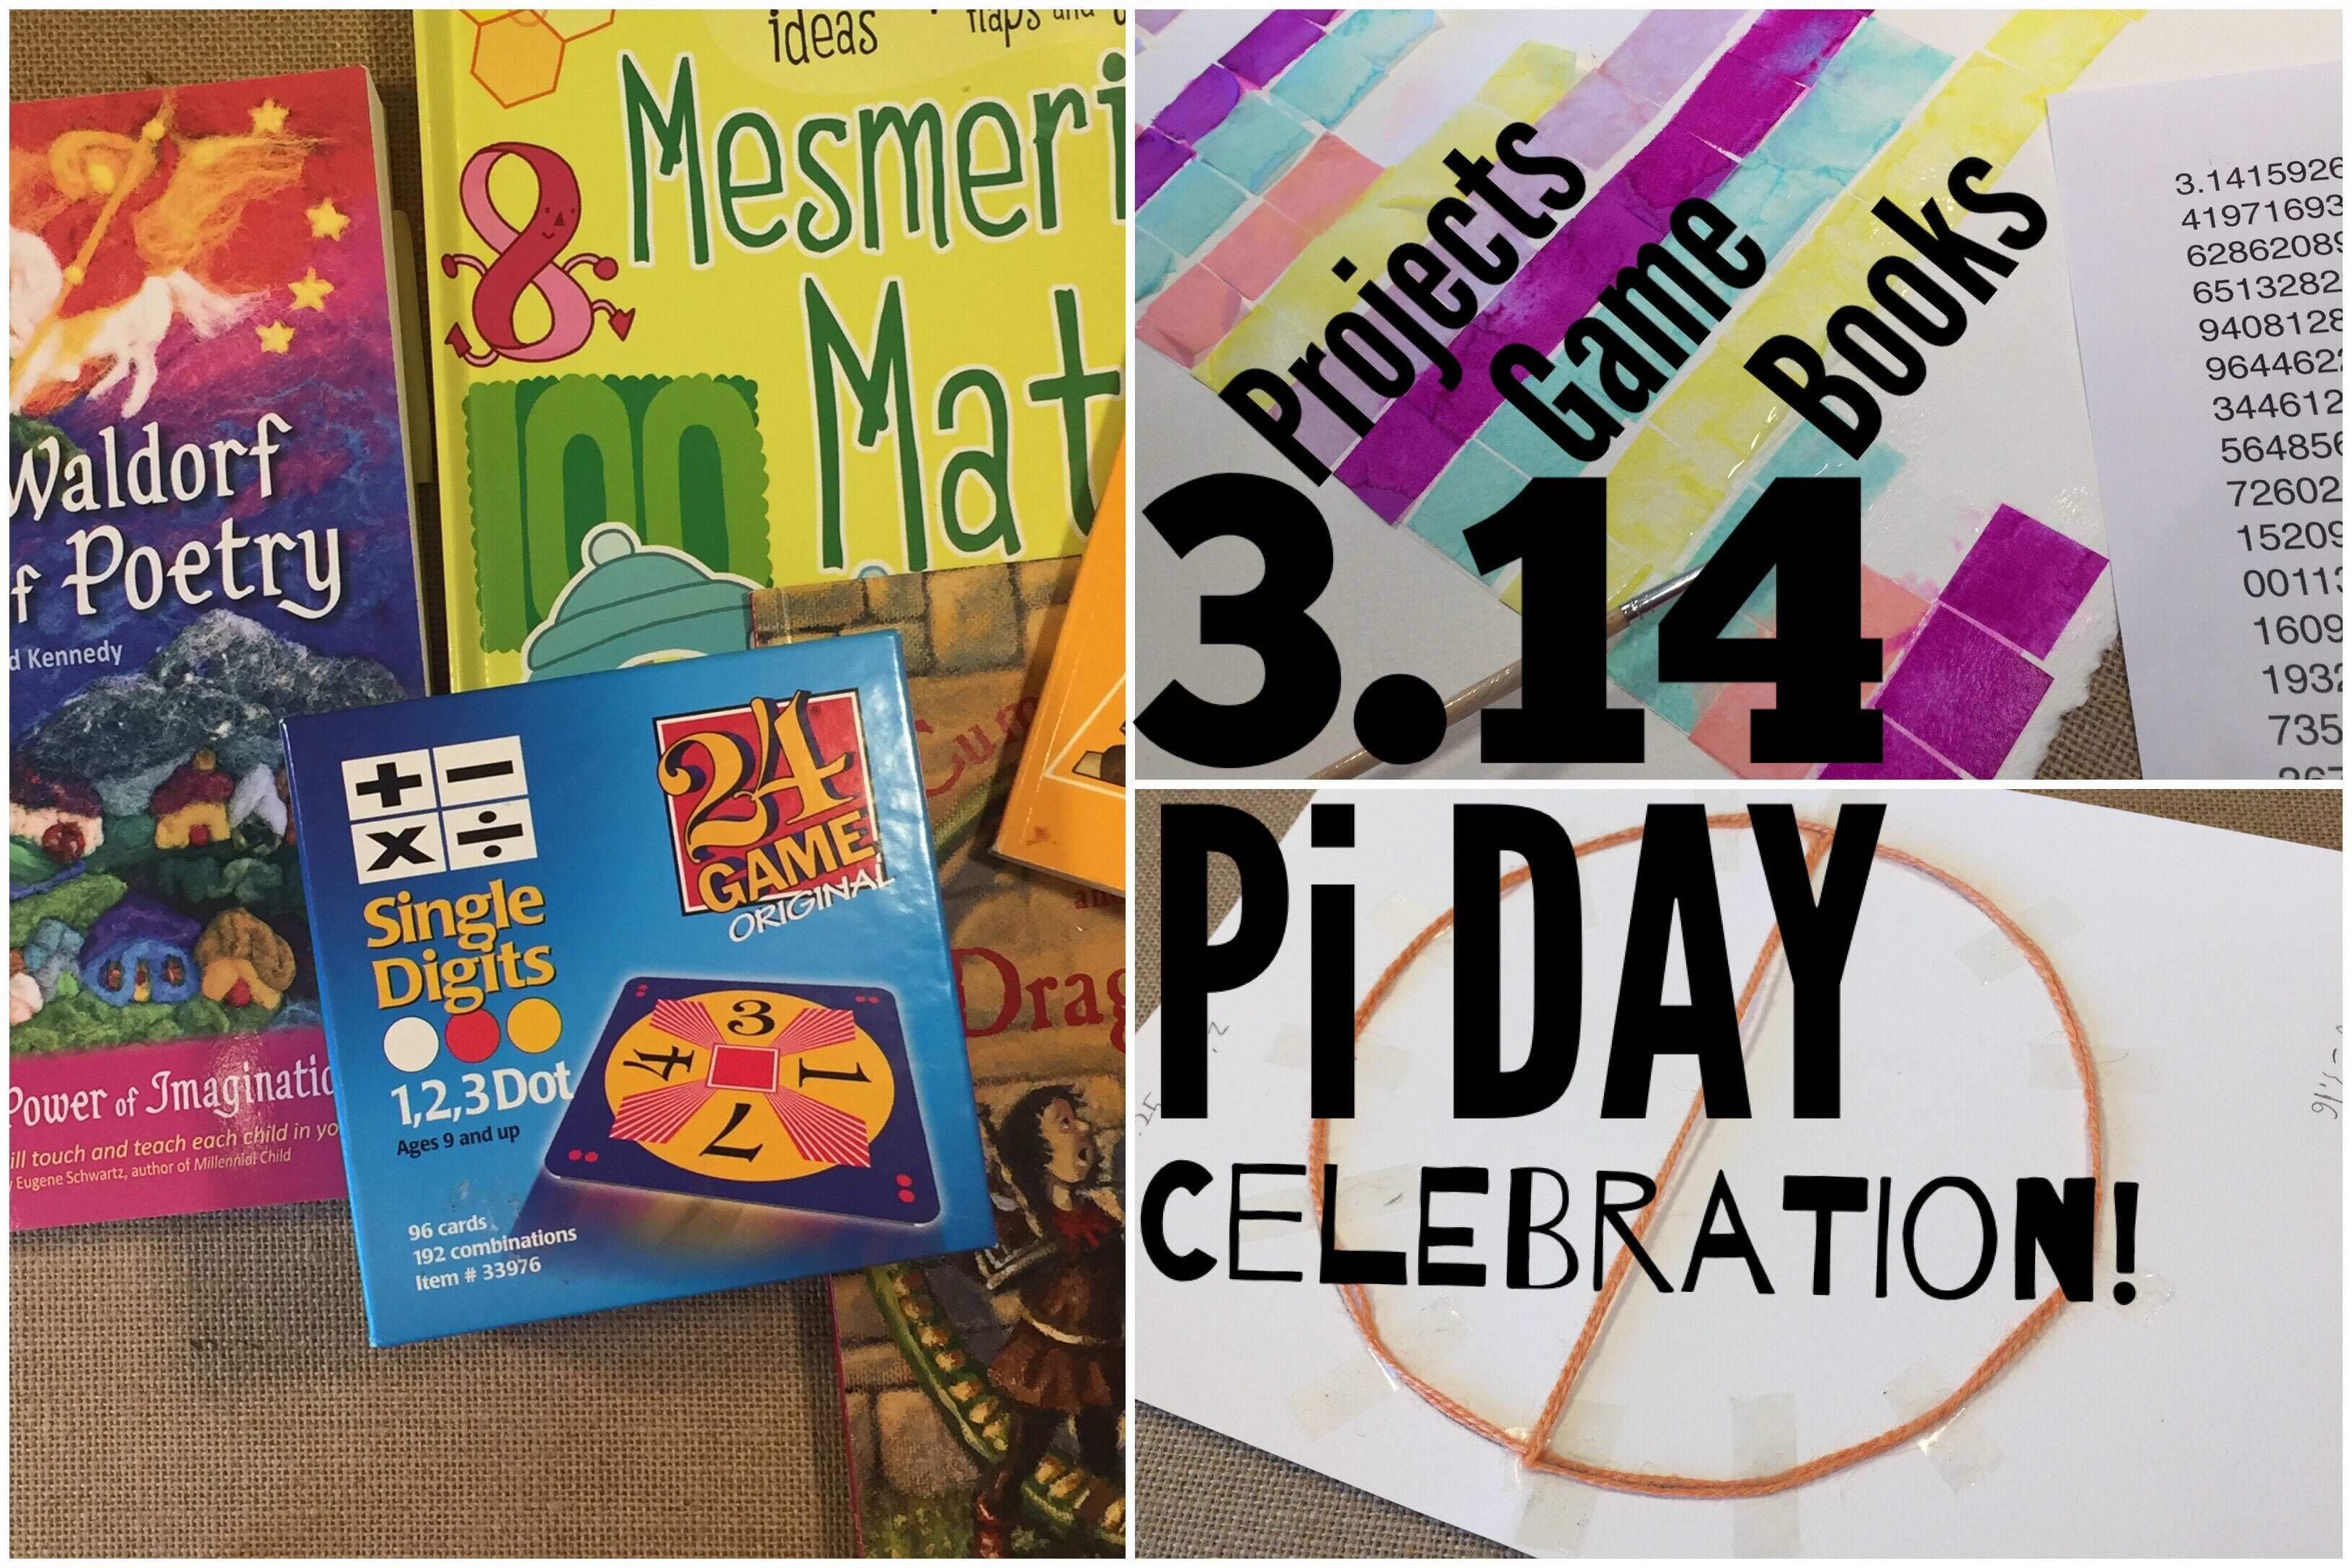 HOW TO CELEBRATE PI DAY | MATH BOOKS, ACTIVITIES AND CRAFTS FOR PI DAY